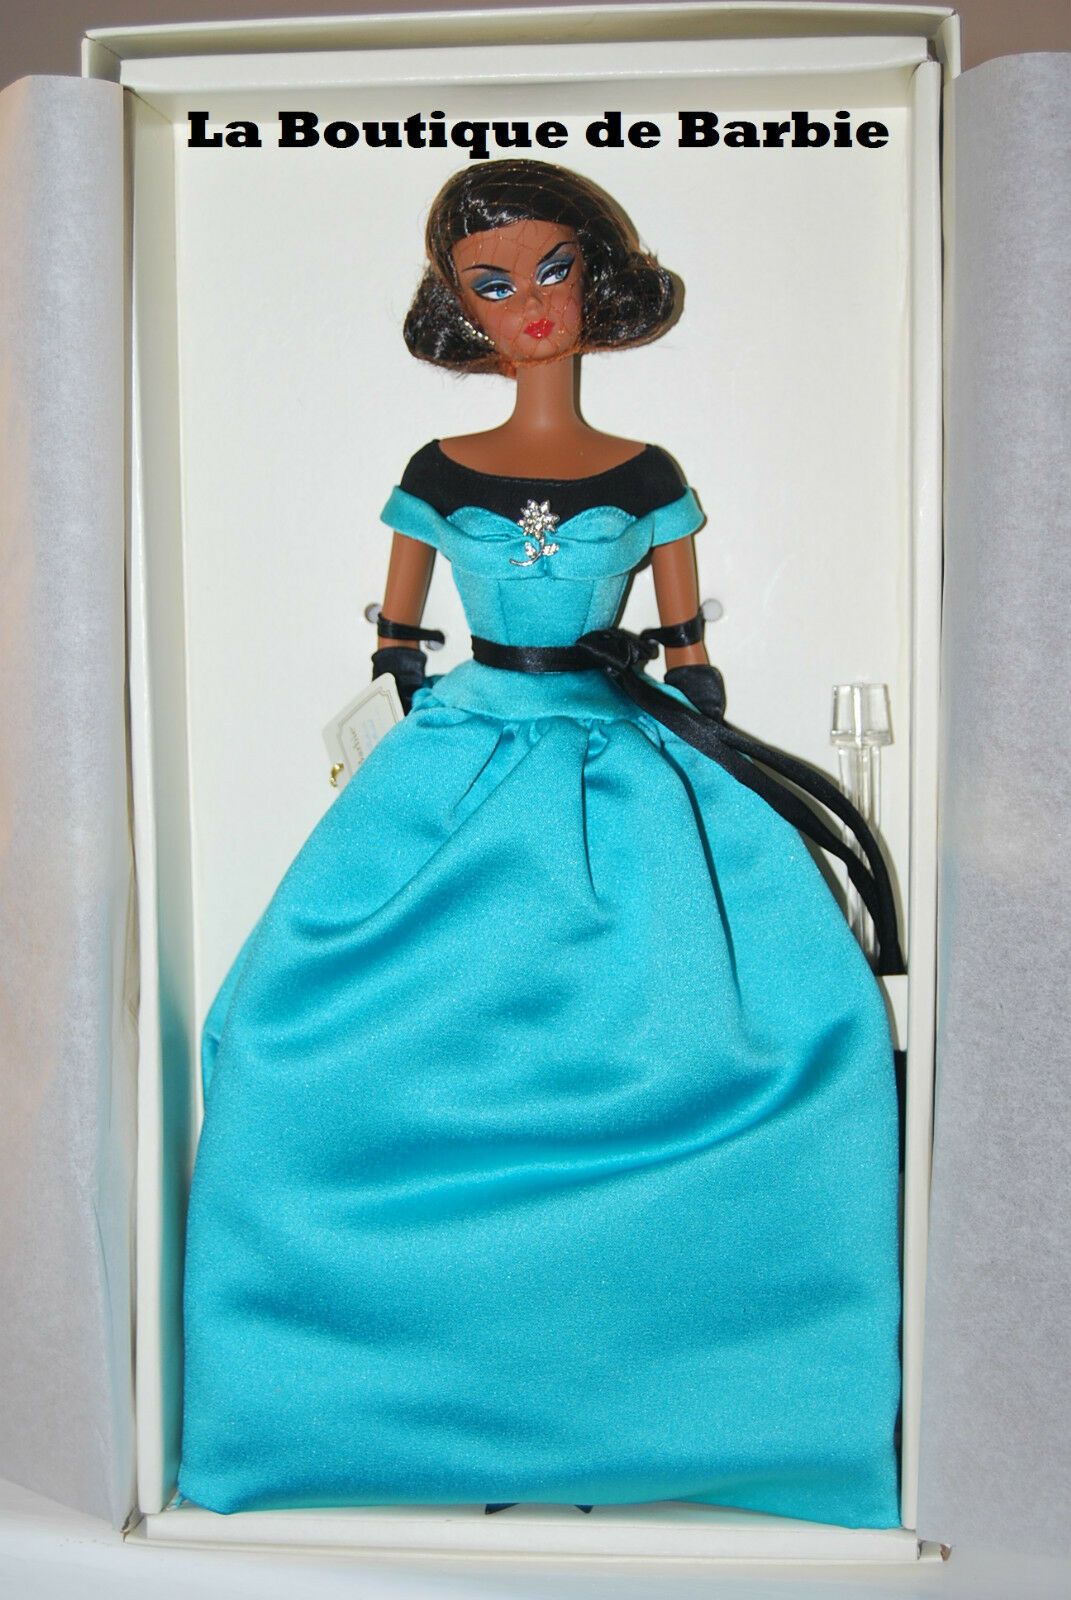 BALL GOWN SILKSTONE BARBIE DOLL, BARBIE FASHION MODEL COLLECTION X8275 2013 NRFB